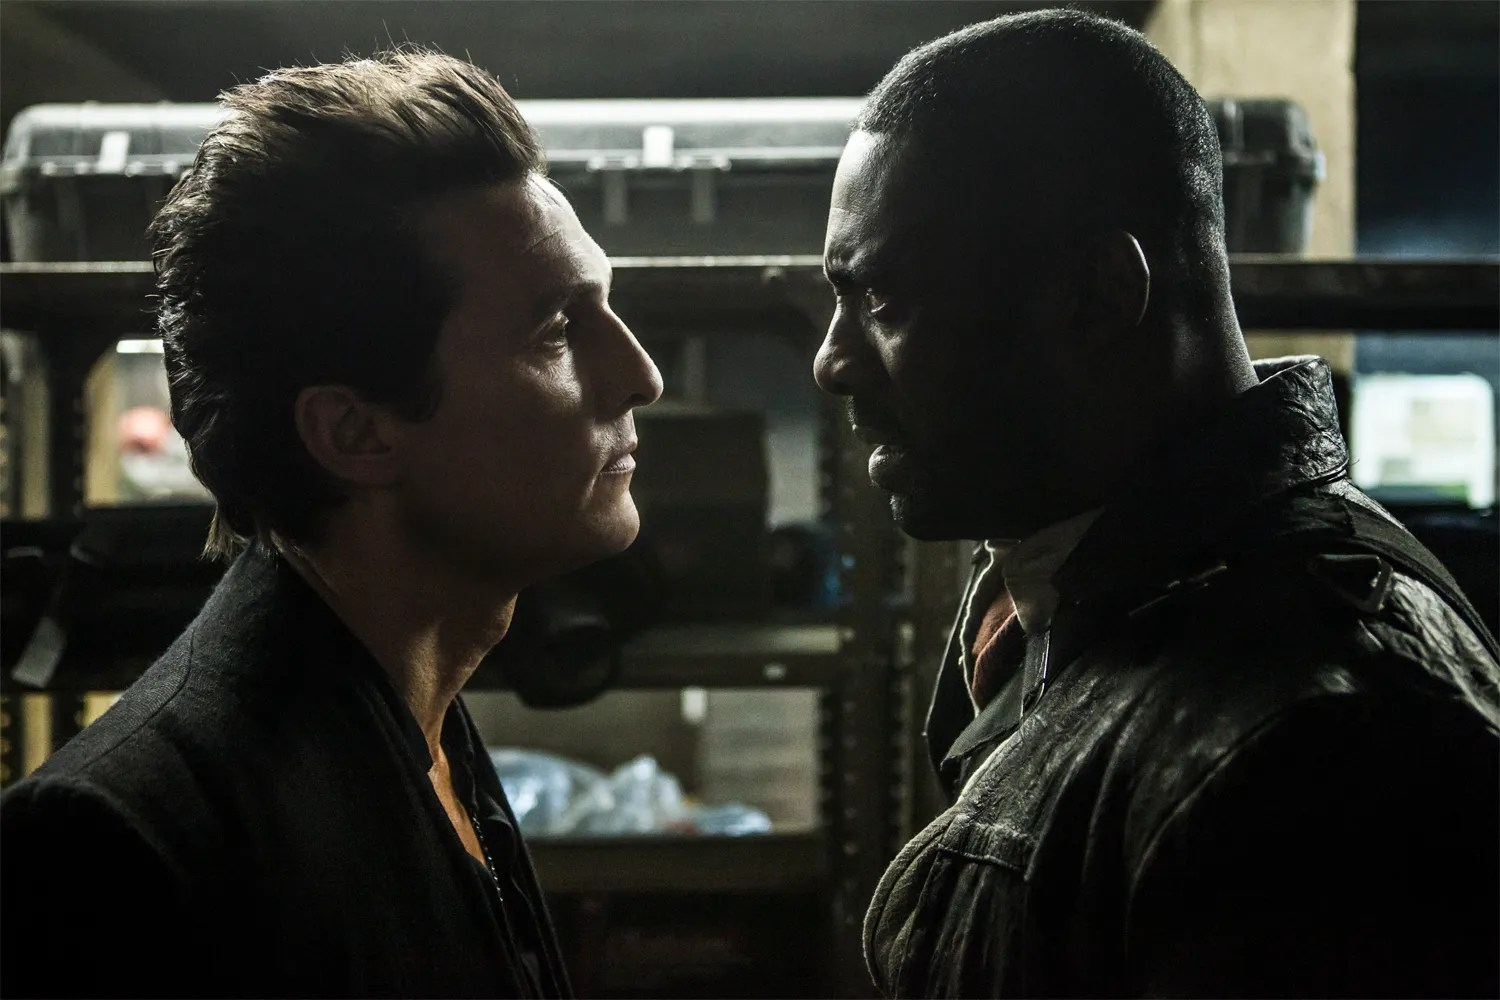 https://i2.wp.com/cdn.collider.com/wp-content/uploads/2017/01/the-dark-tower-matthew-mcconaughey-idris-elba.jpg